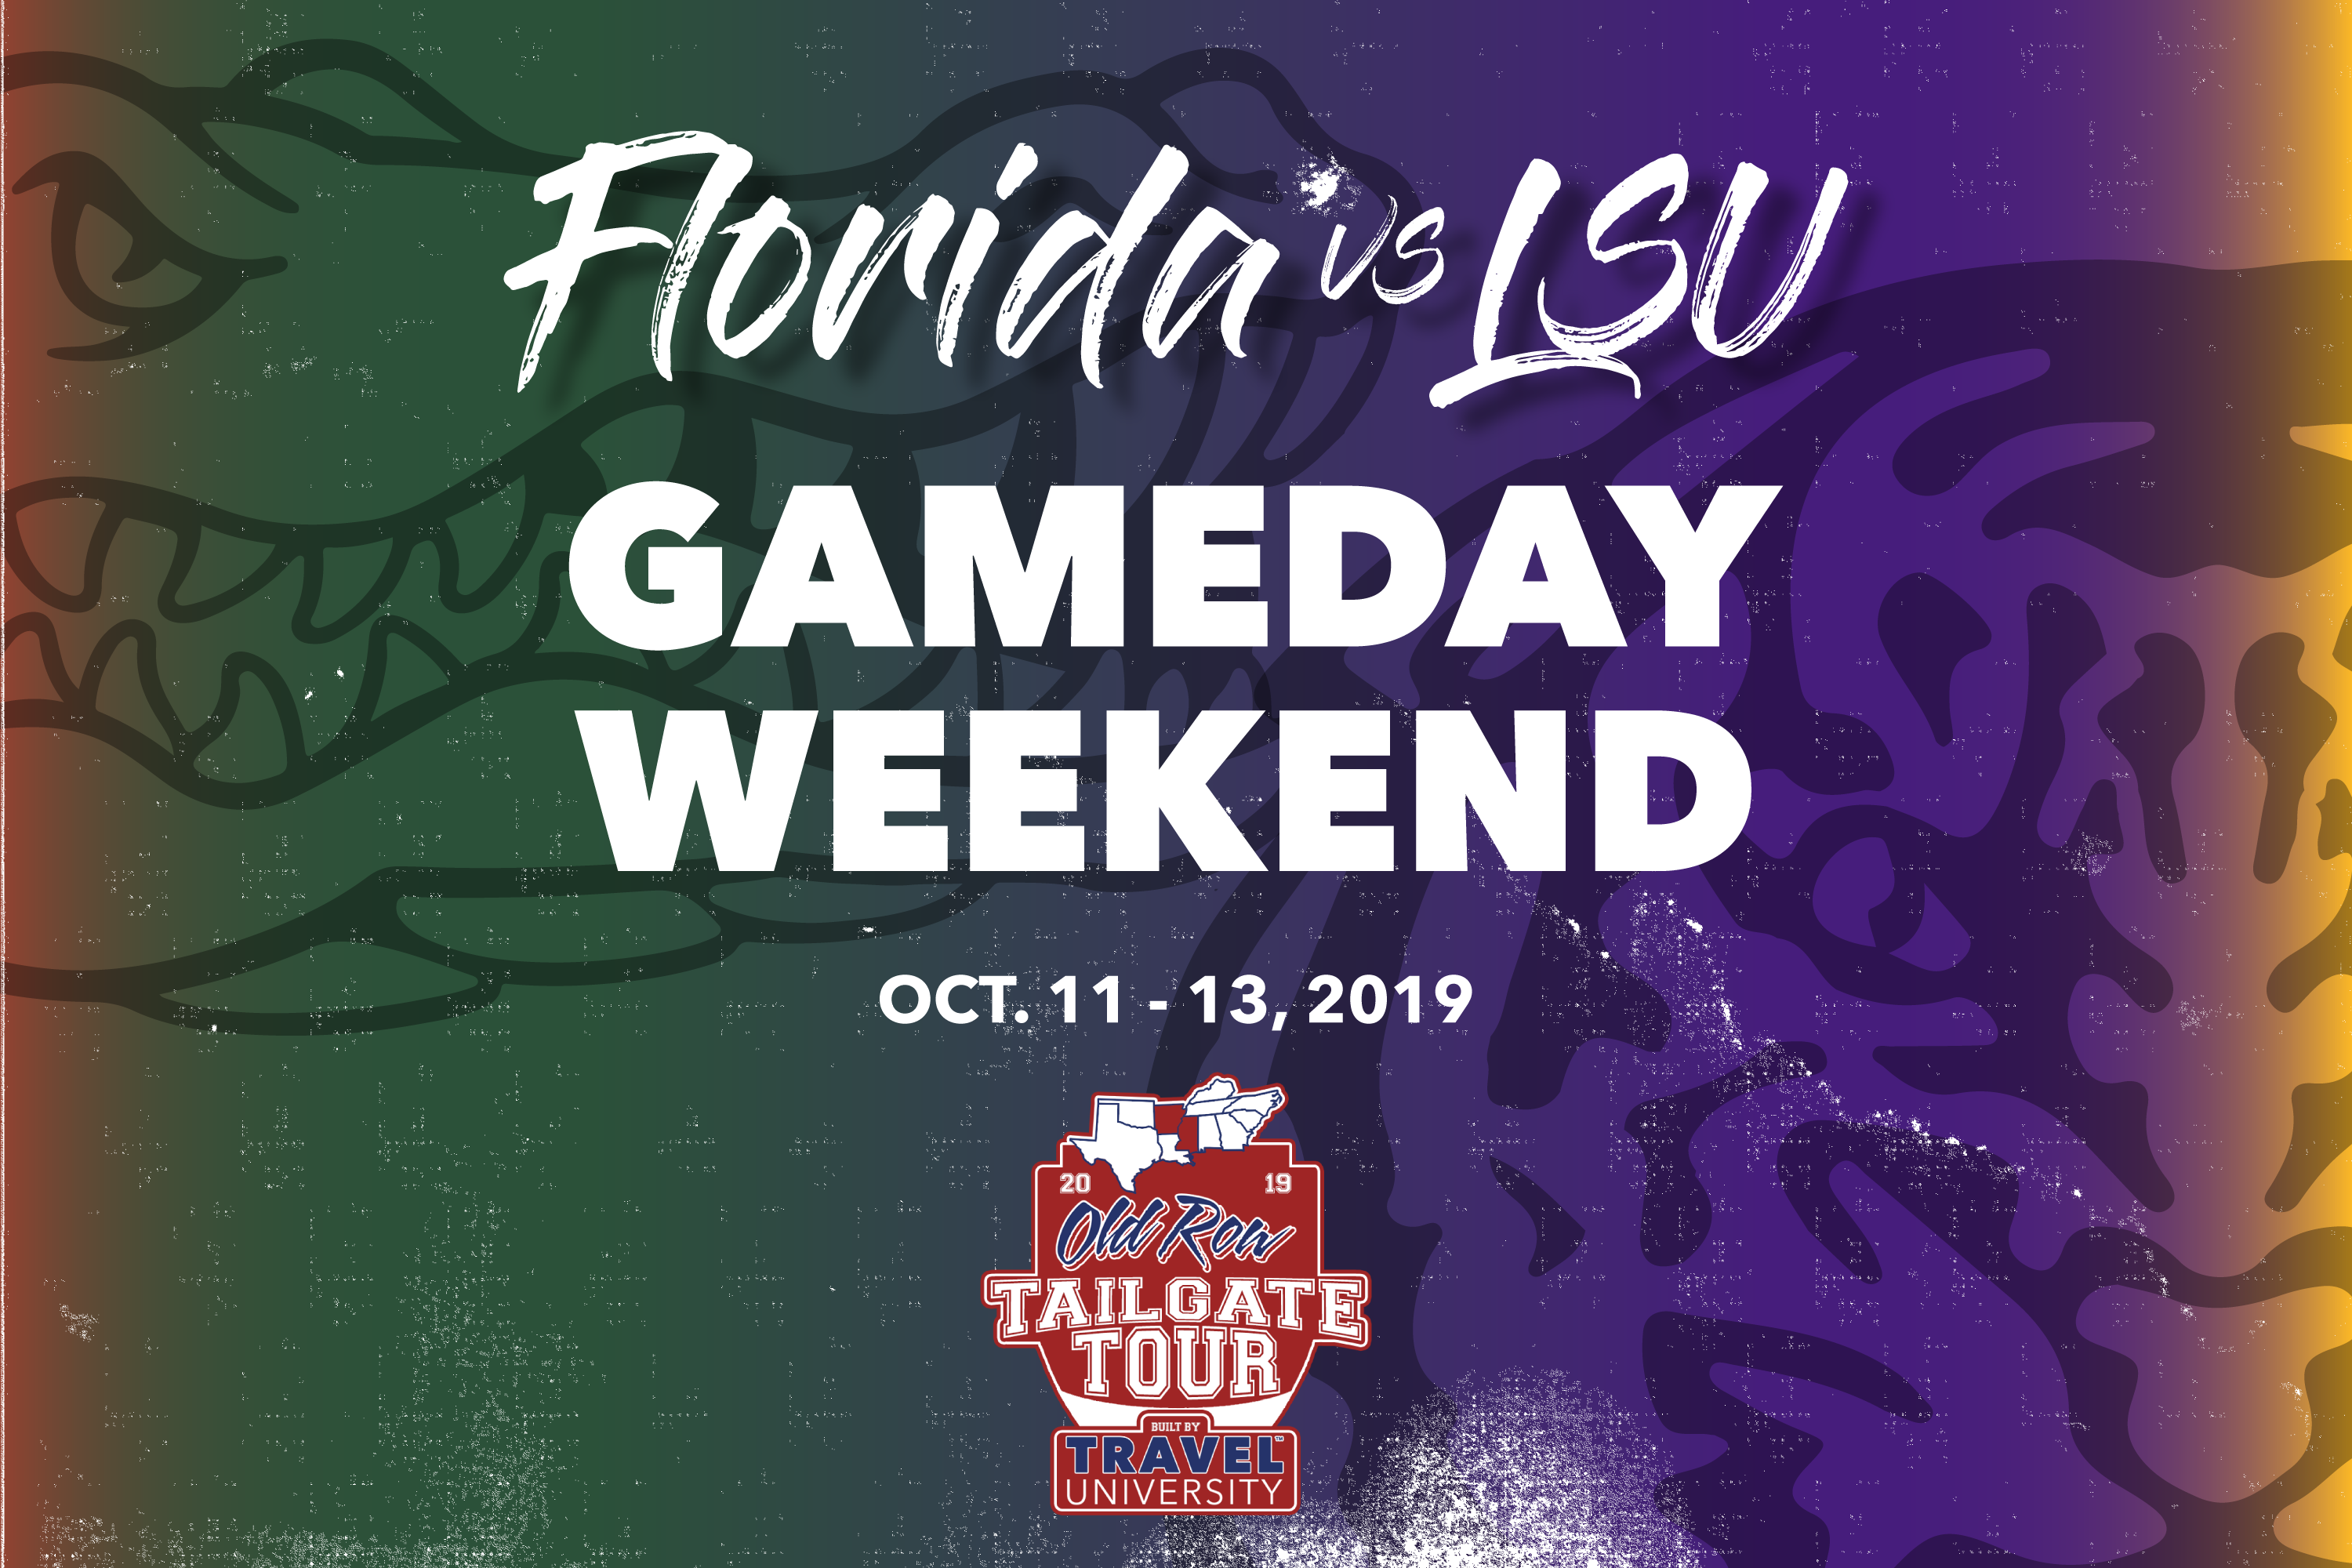 Florida vs LSU Gameday Weekend | Old Row Tailgate Tour